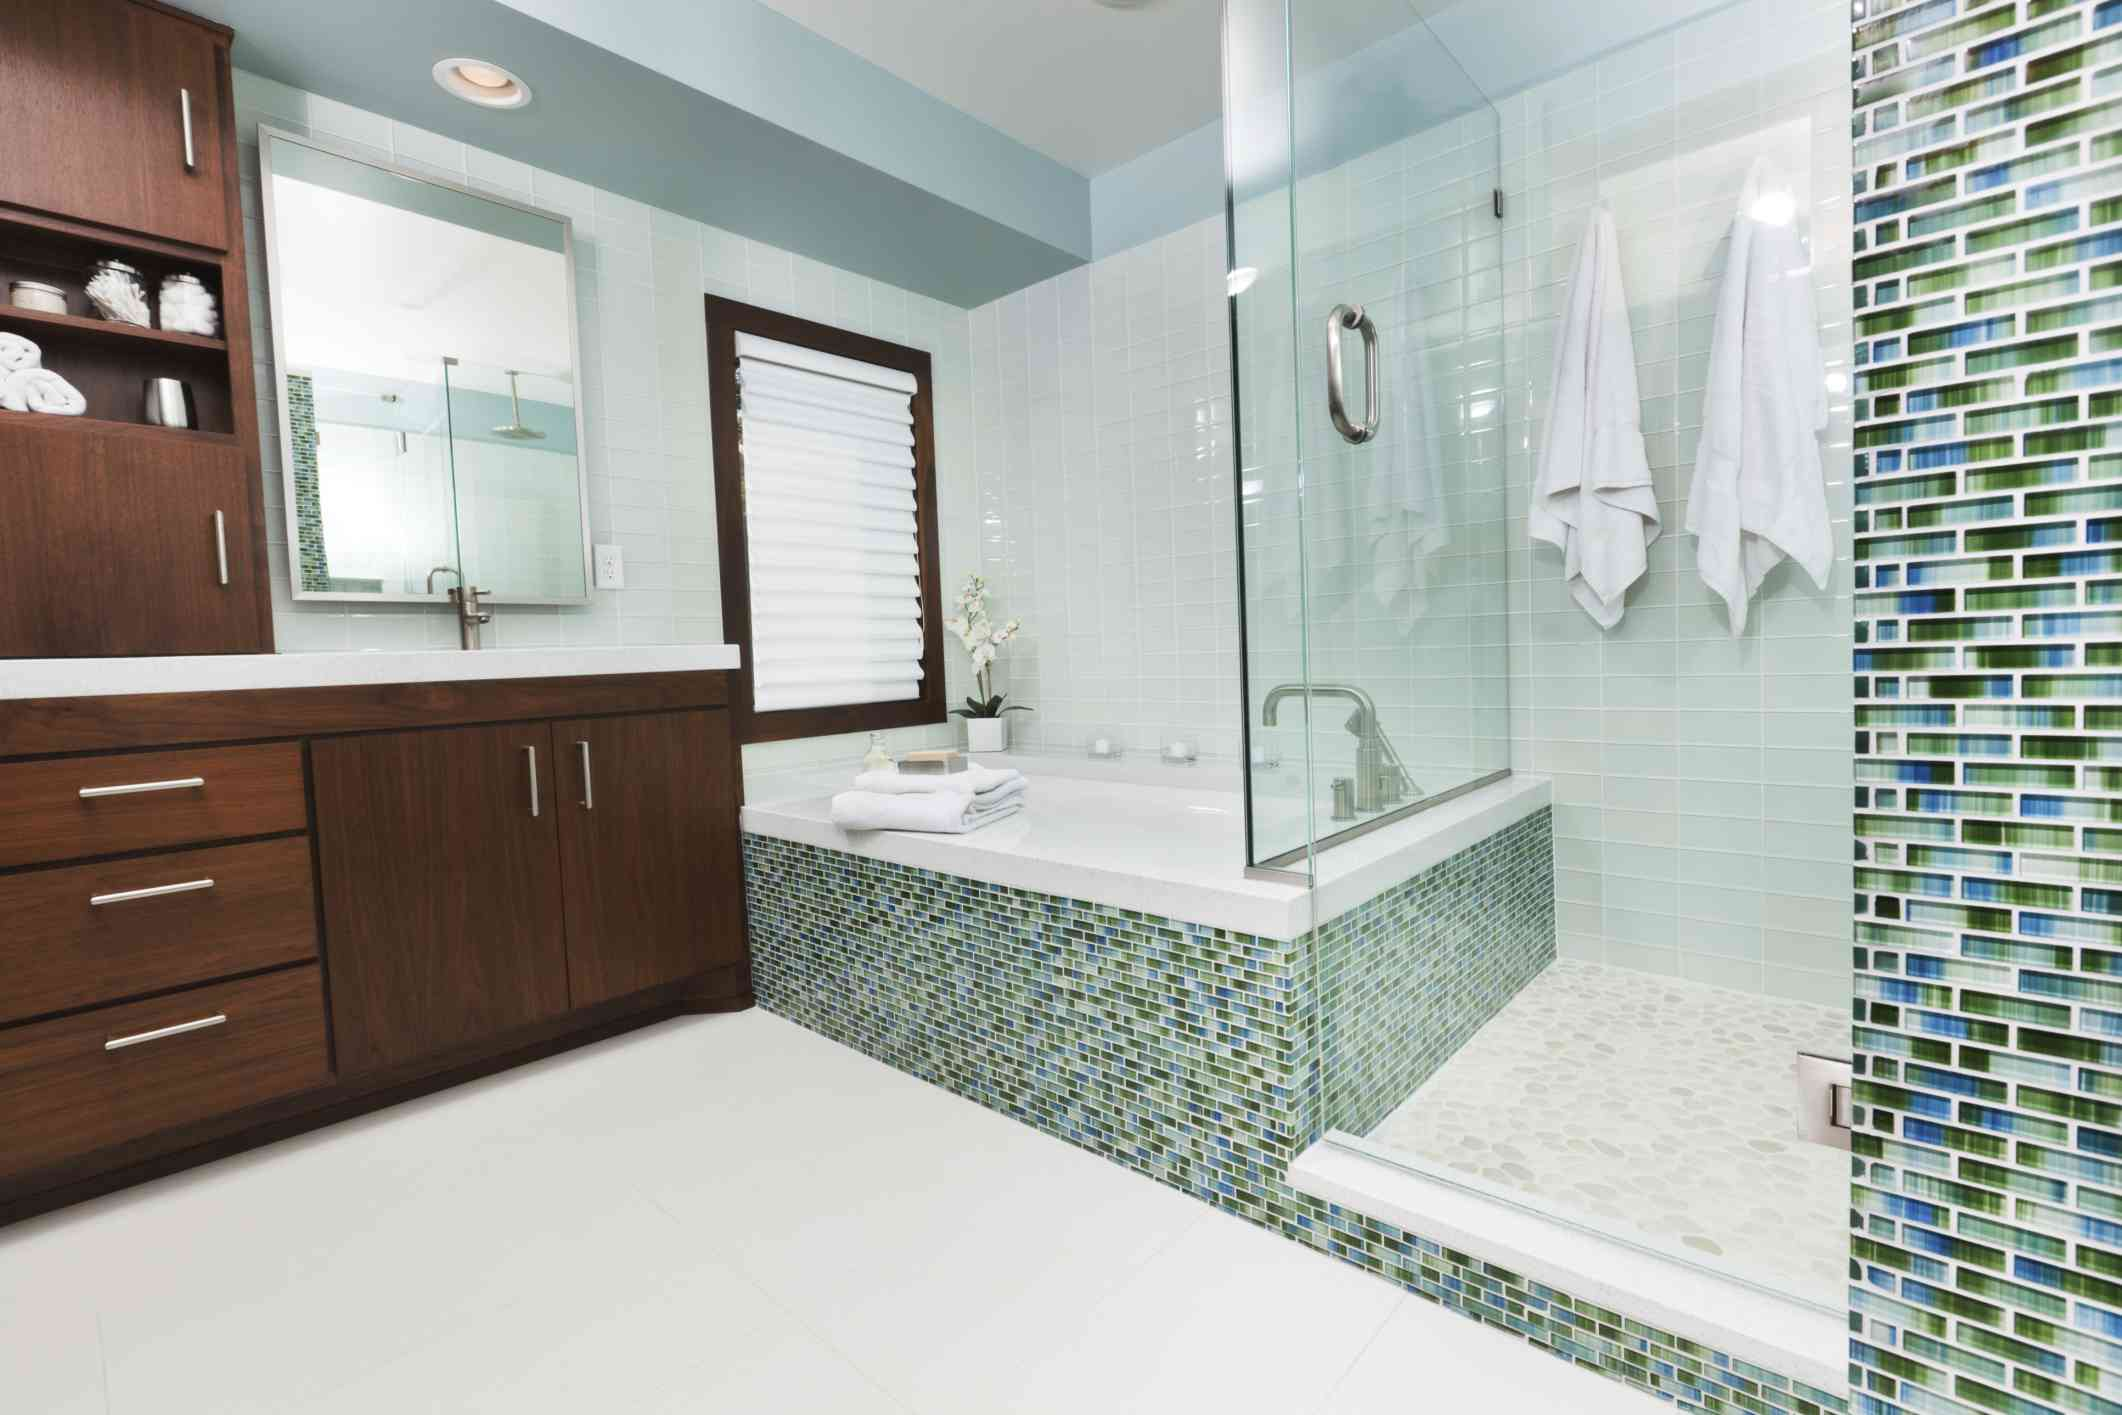 Gorgeous Shower Tub Combo With Walls And Bath Surround Tiled In Blue ...